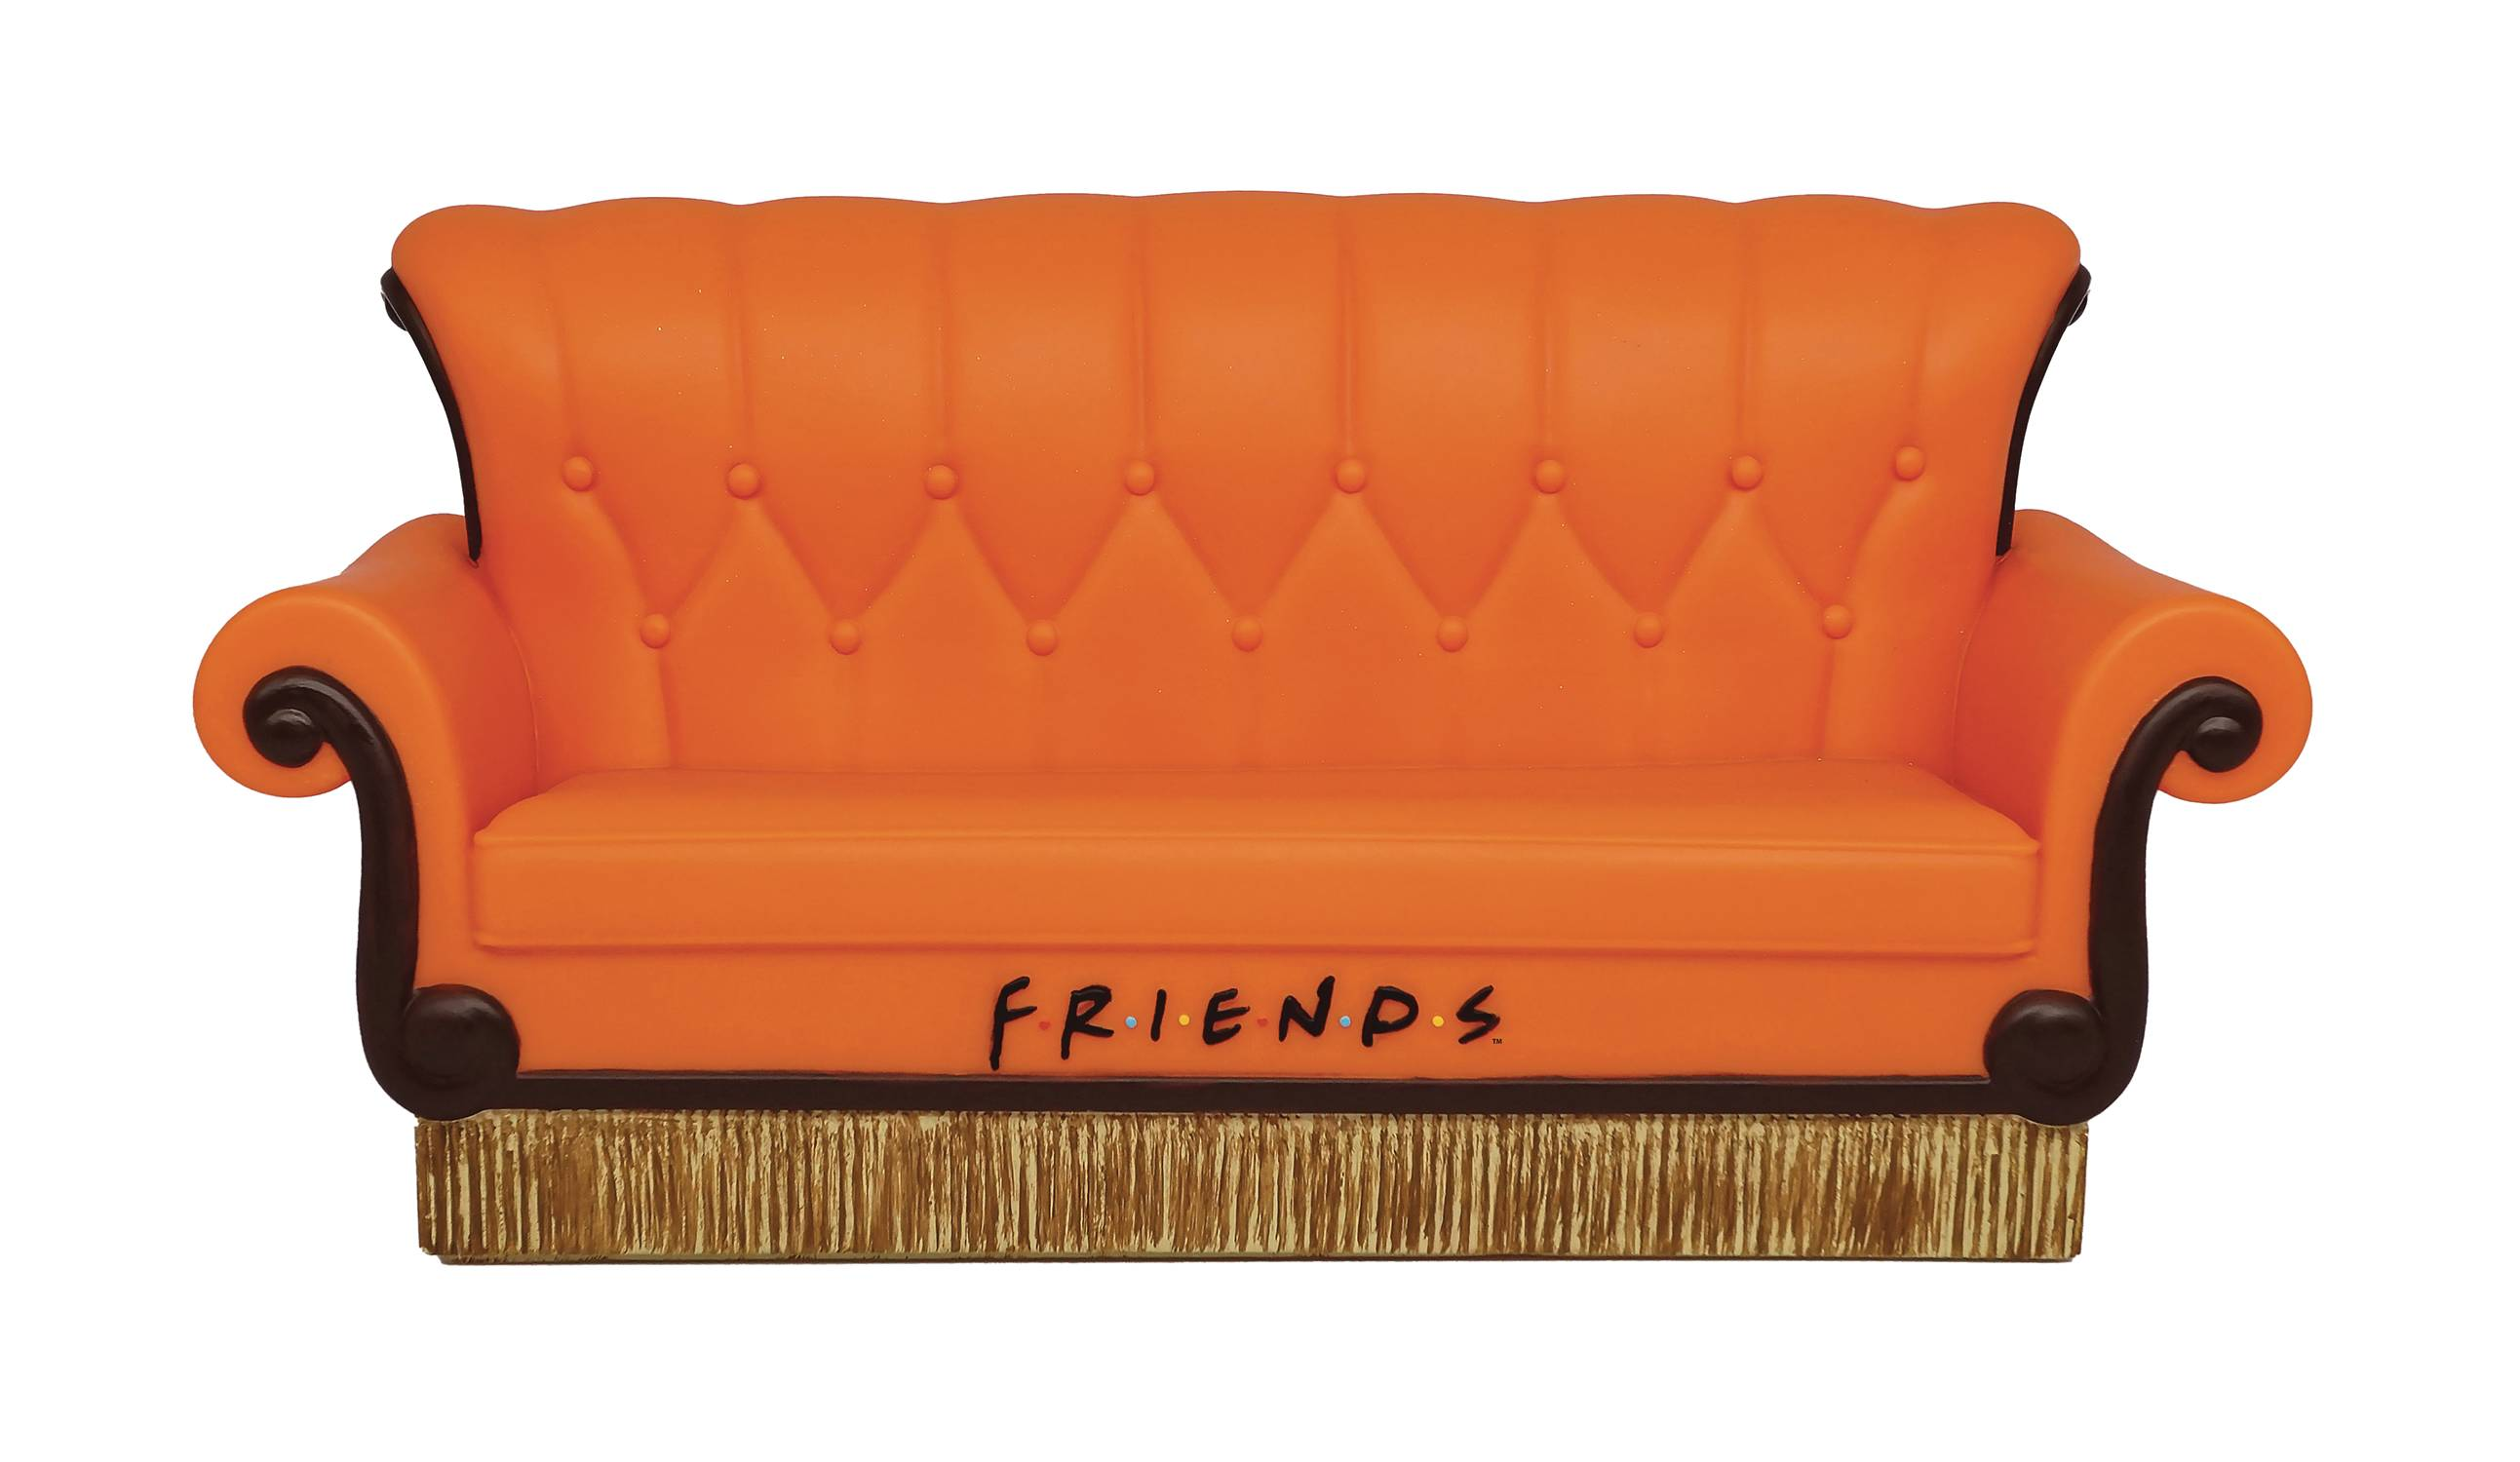 WB FRIENDS COUCH PVC BANK